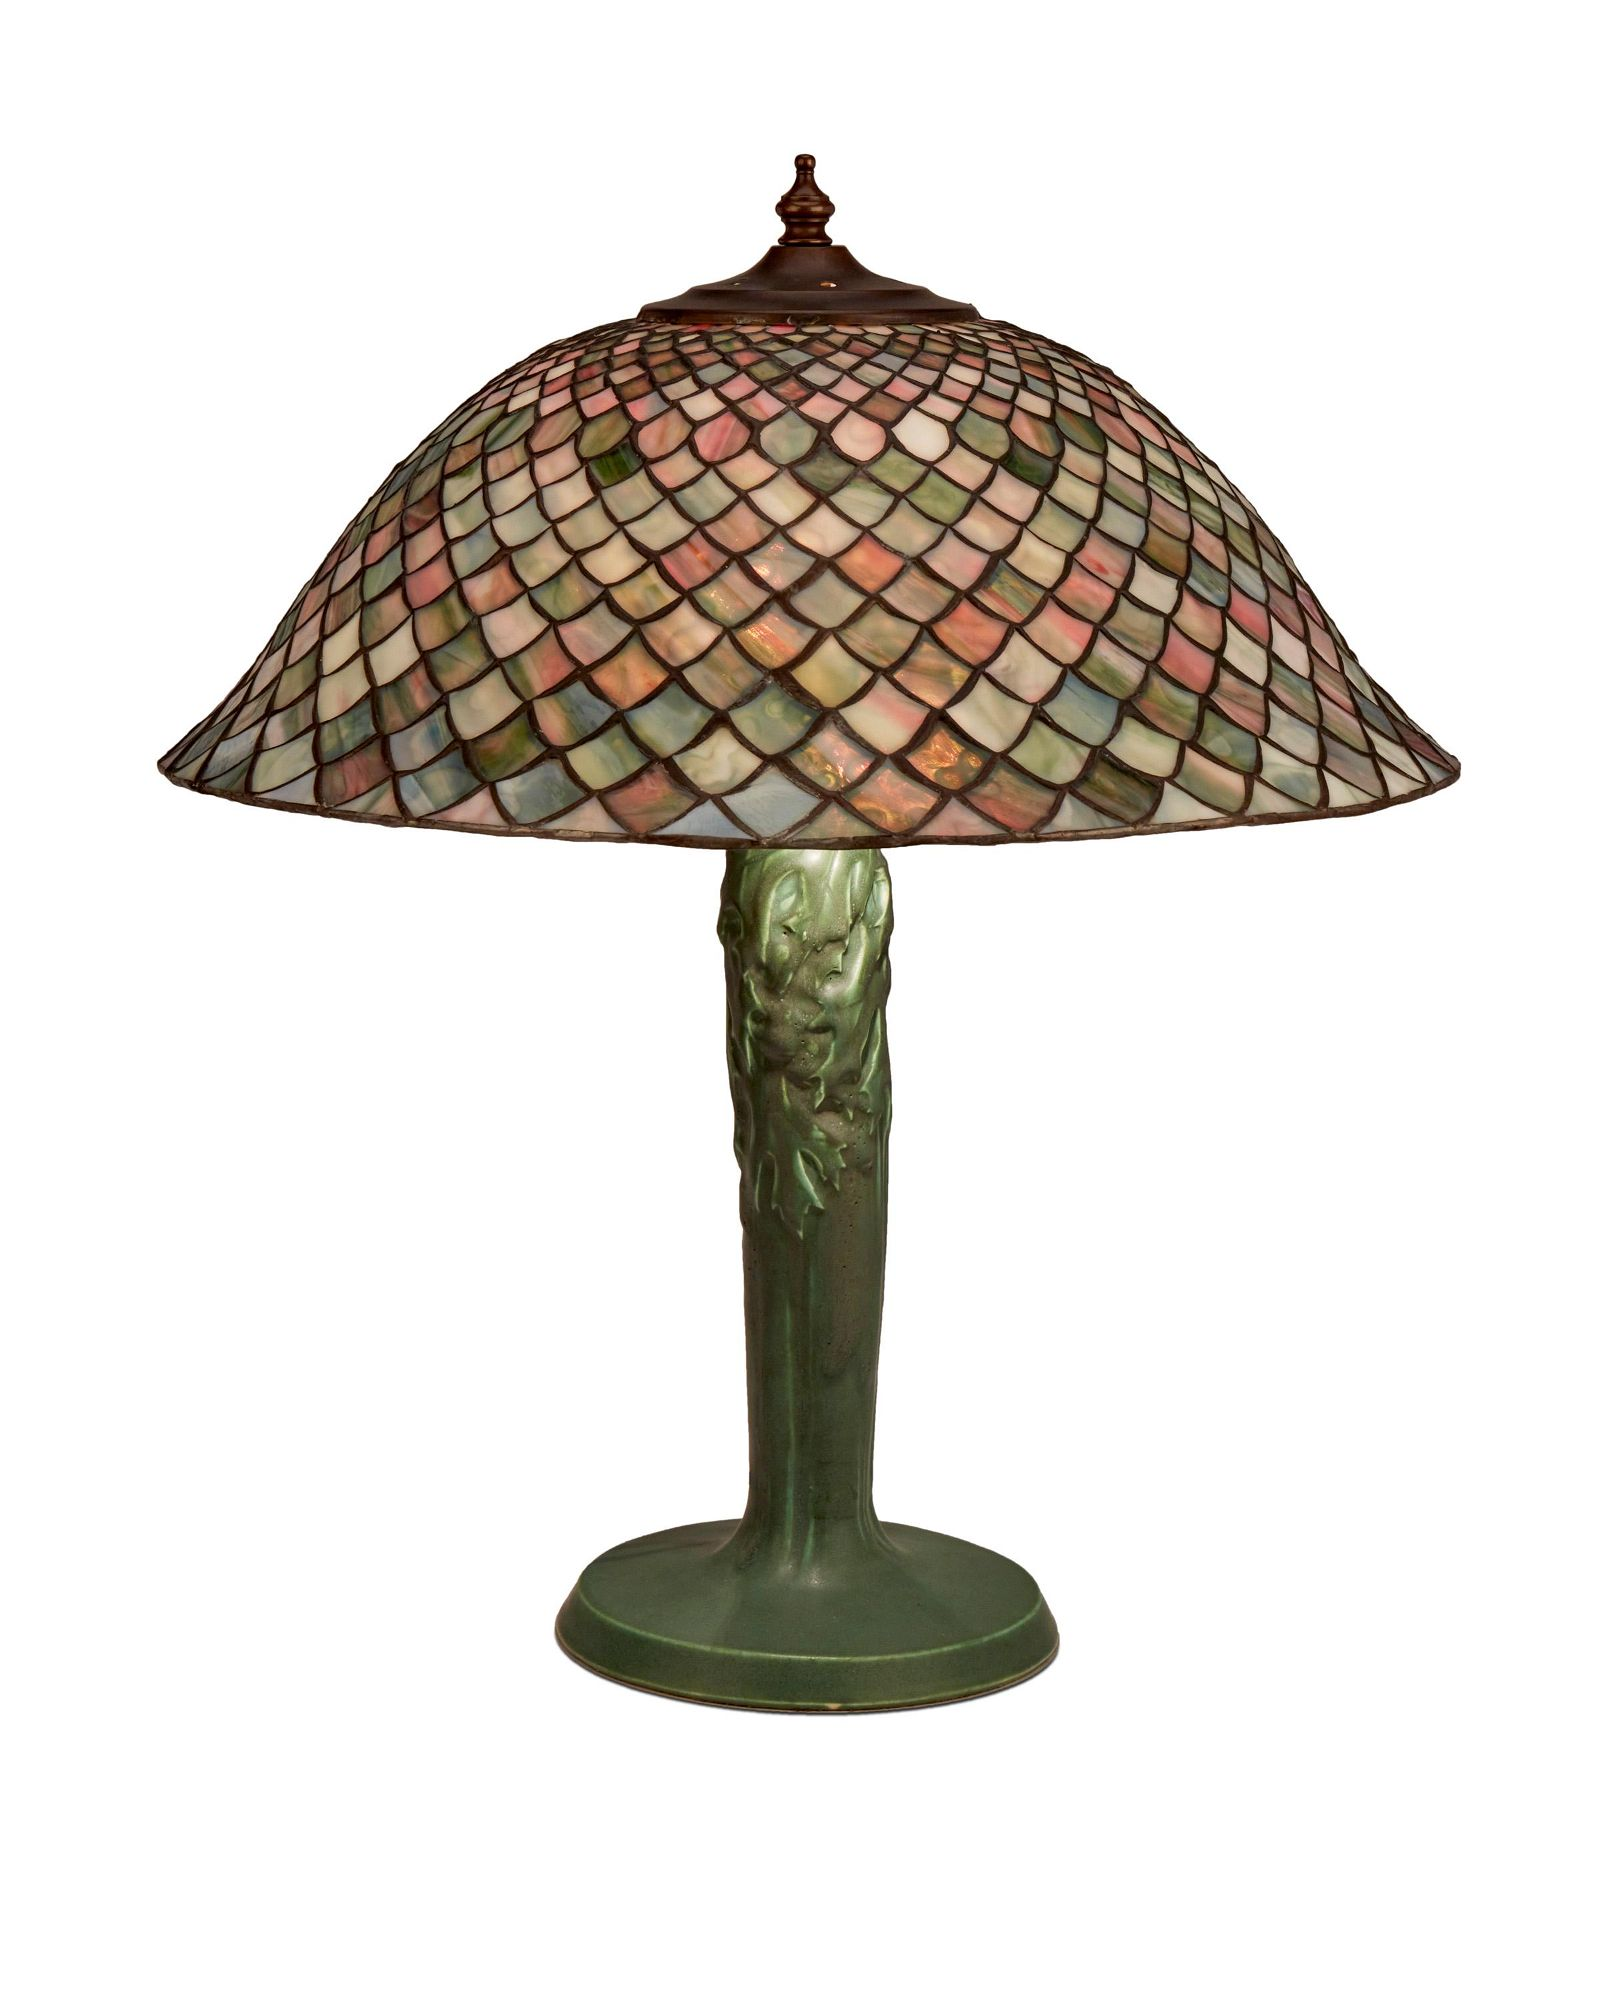 A Rookwood pottery lamp